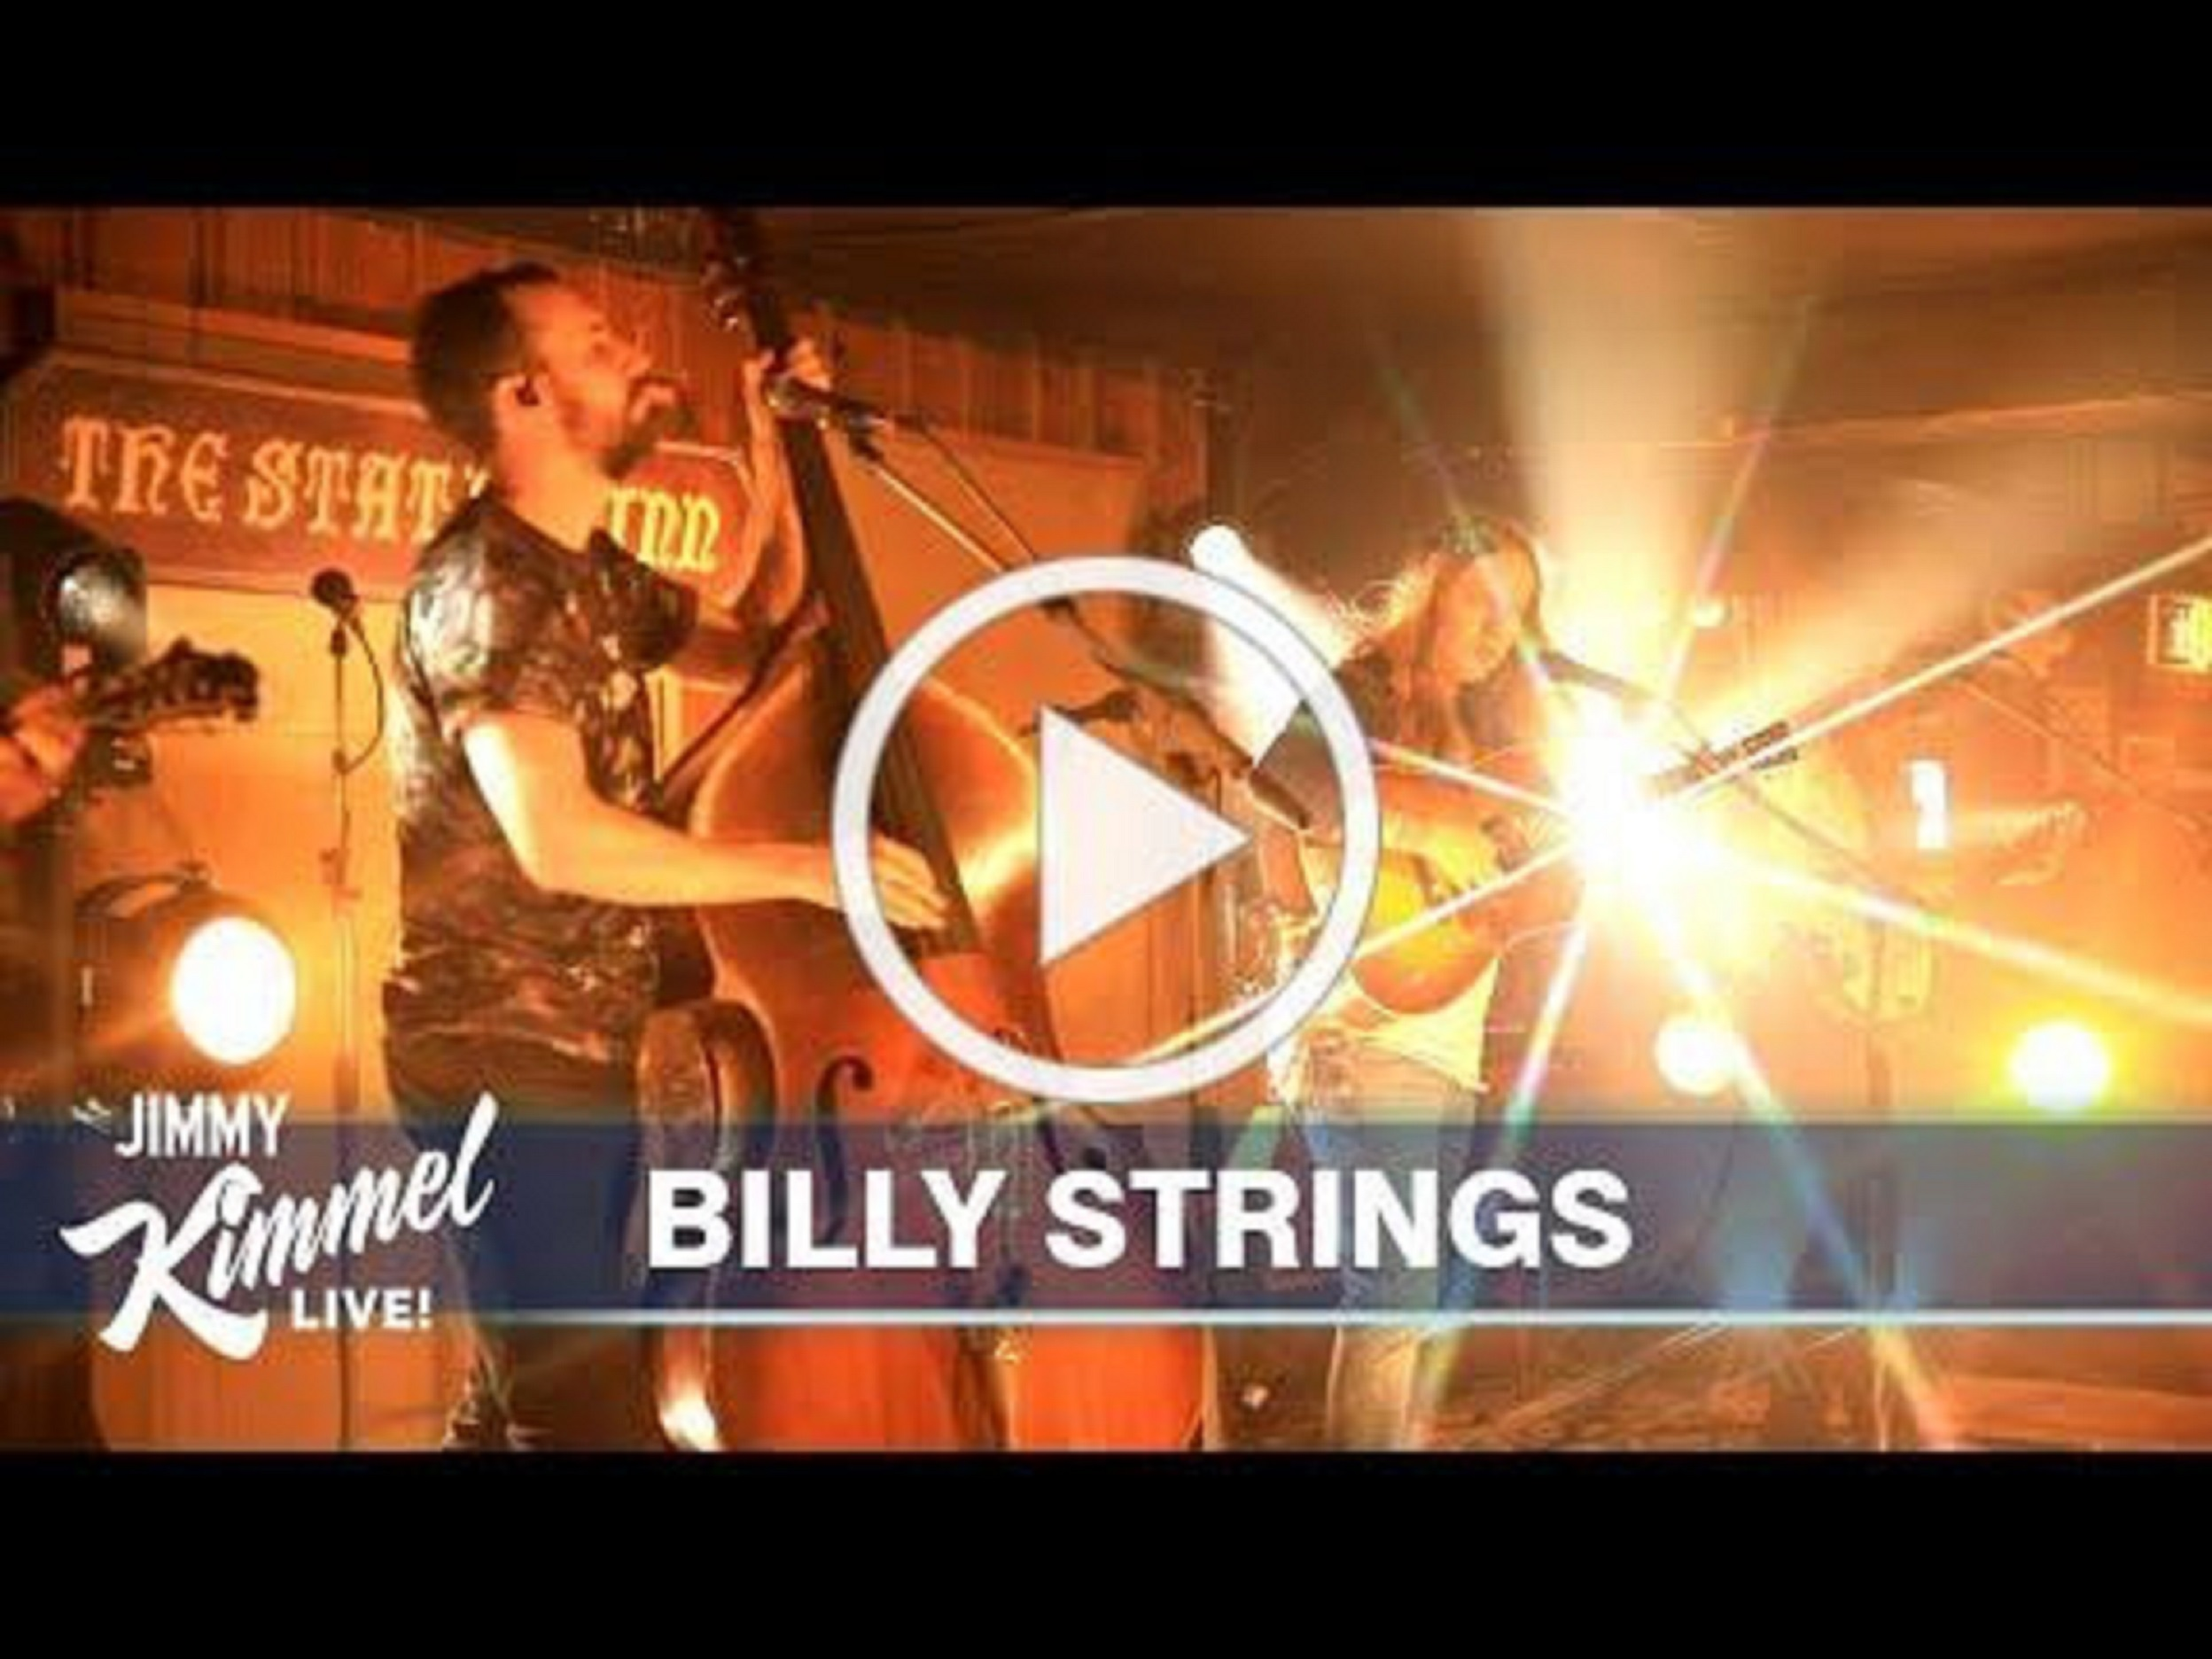 Billy Strings performed on Jimmy Kimmel Live! last night